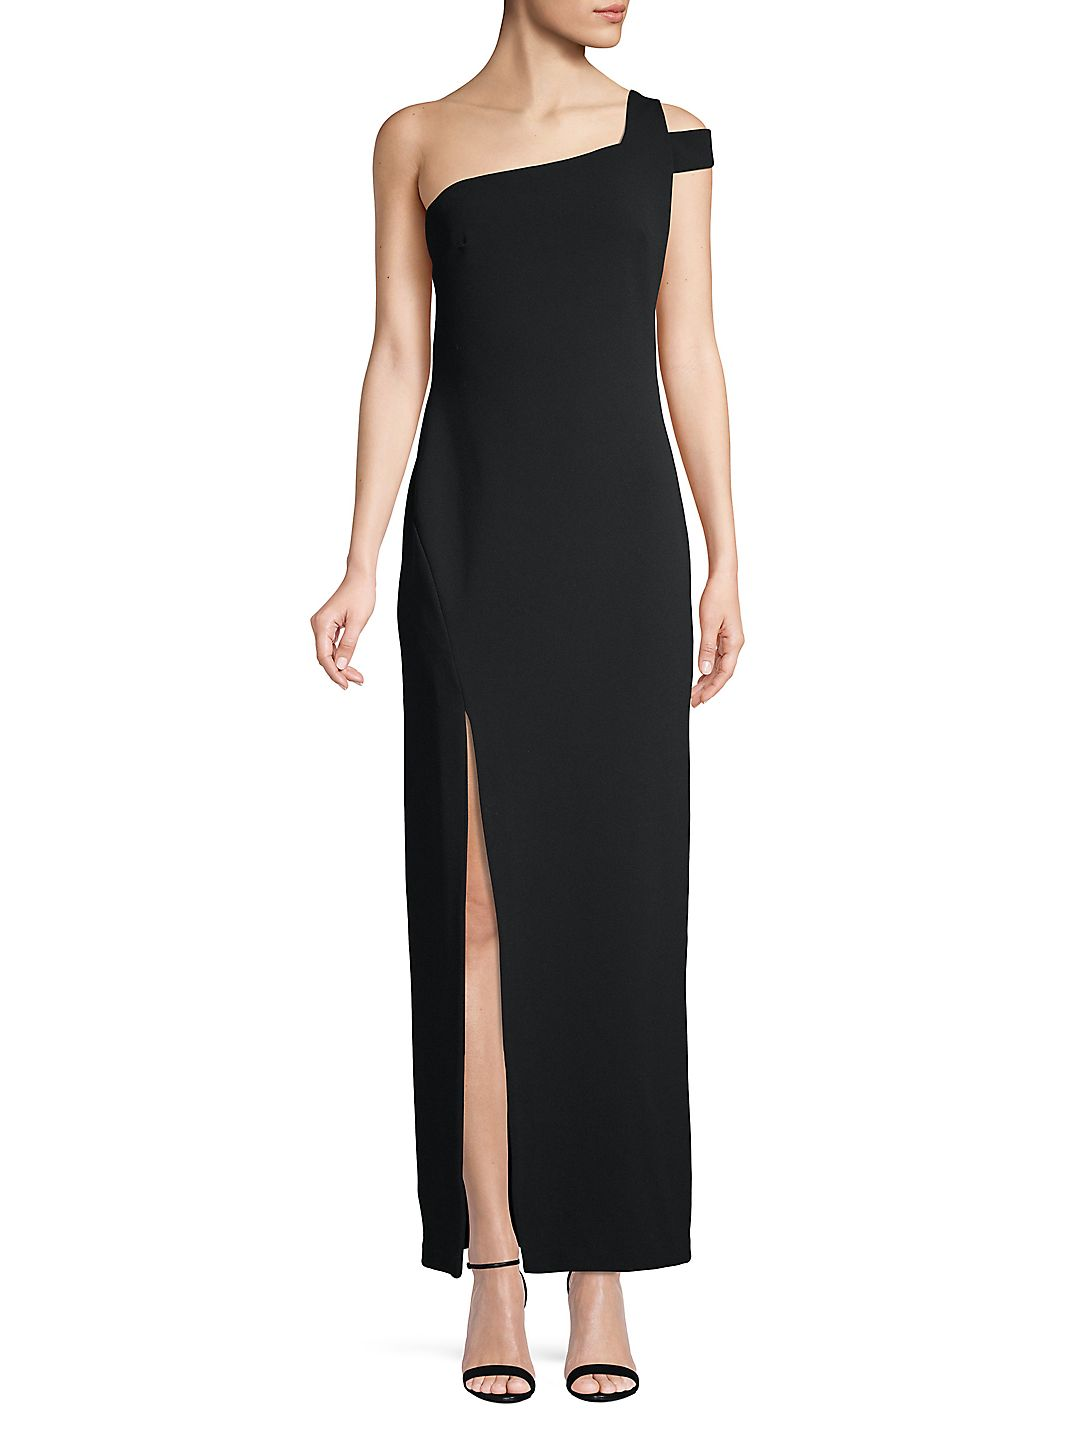 One Shoulder Slit Evening Gown